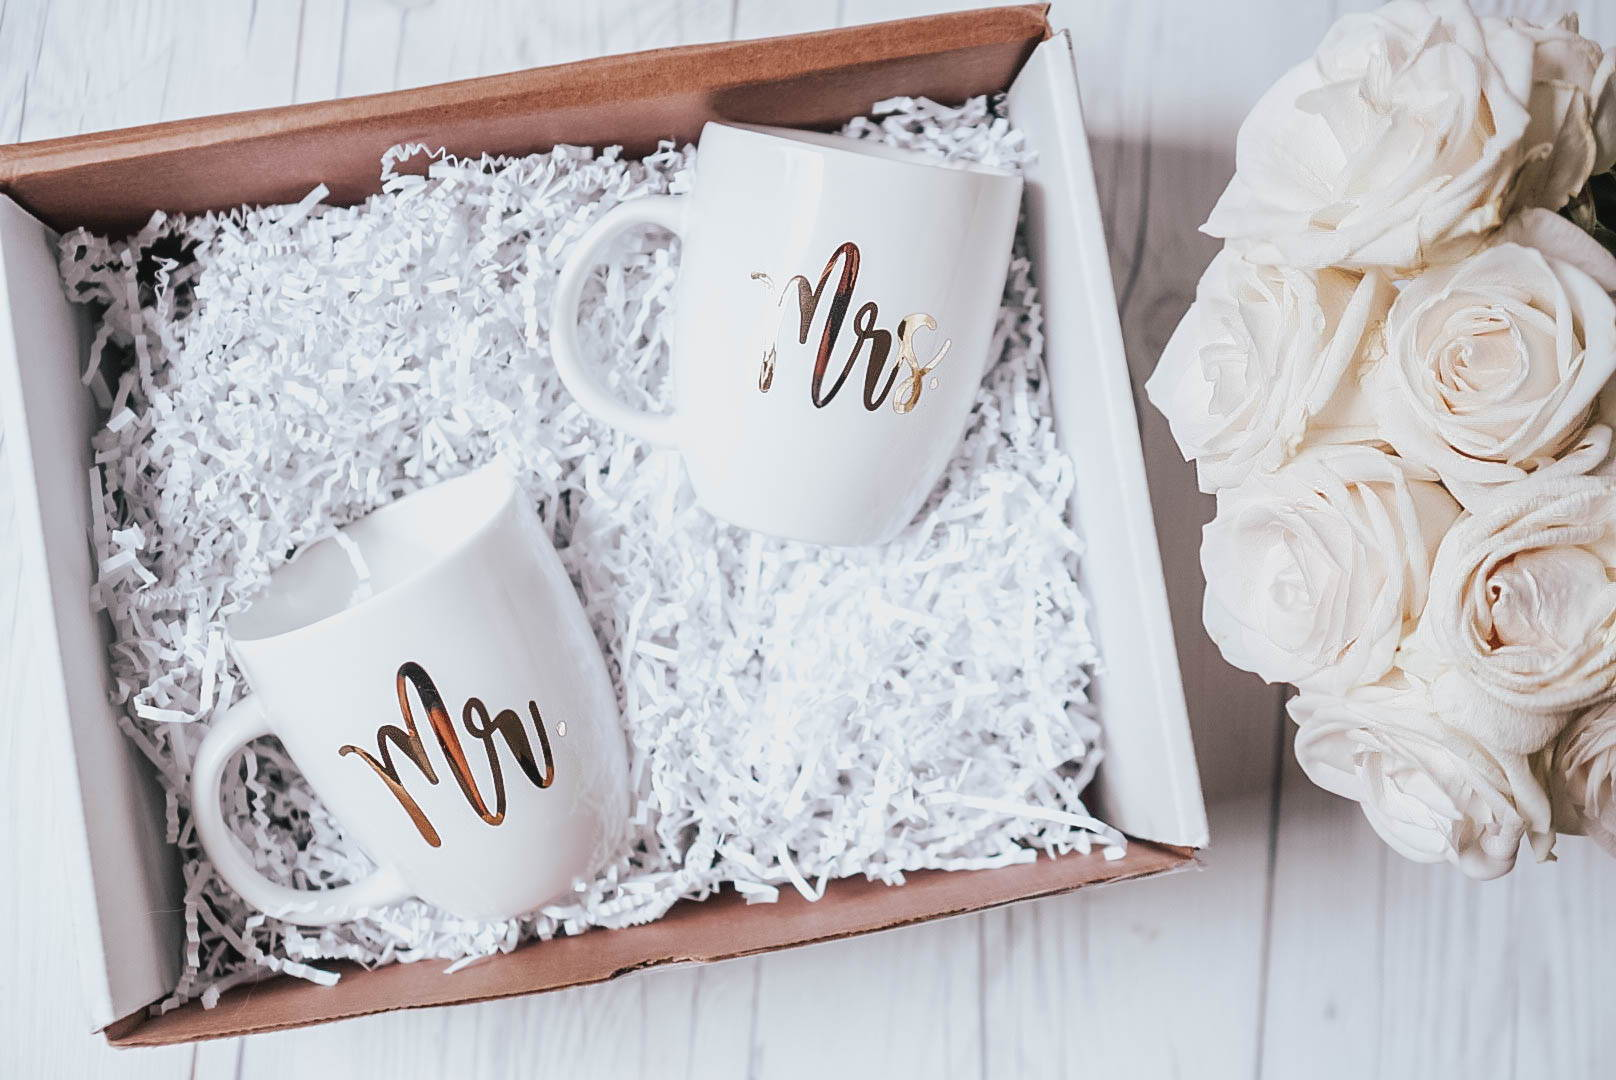 DIY wedding gifts with Craftables chrome adhesive vinyl